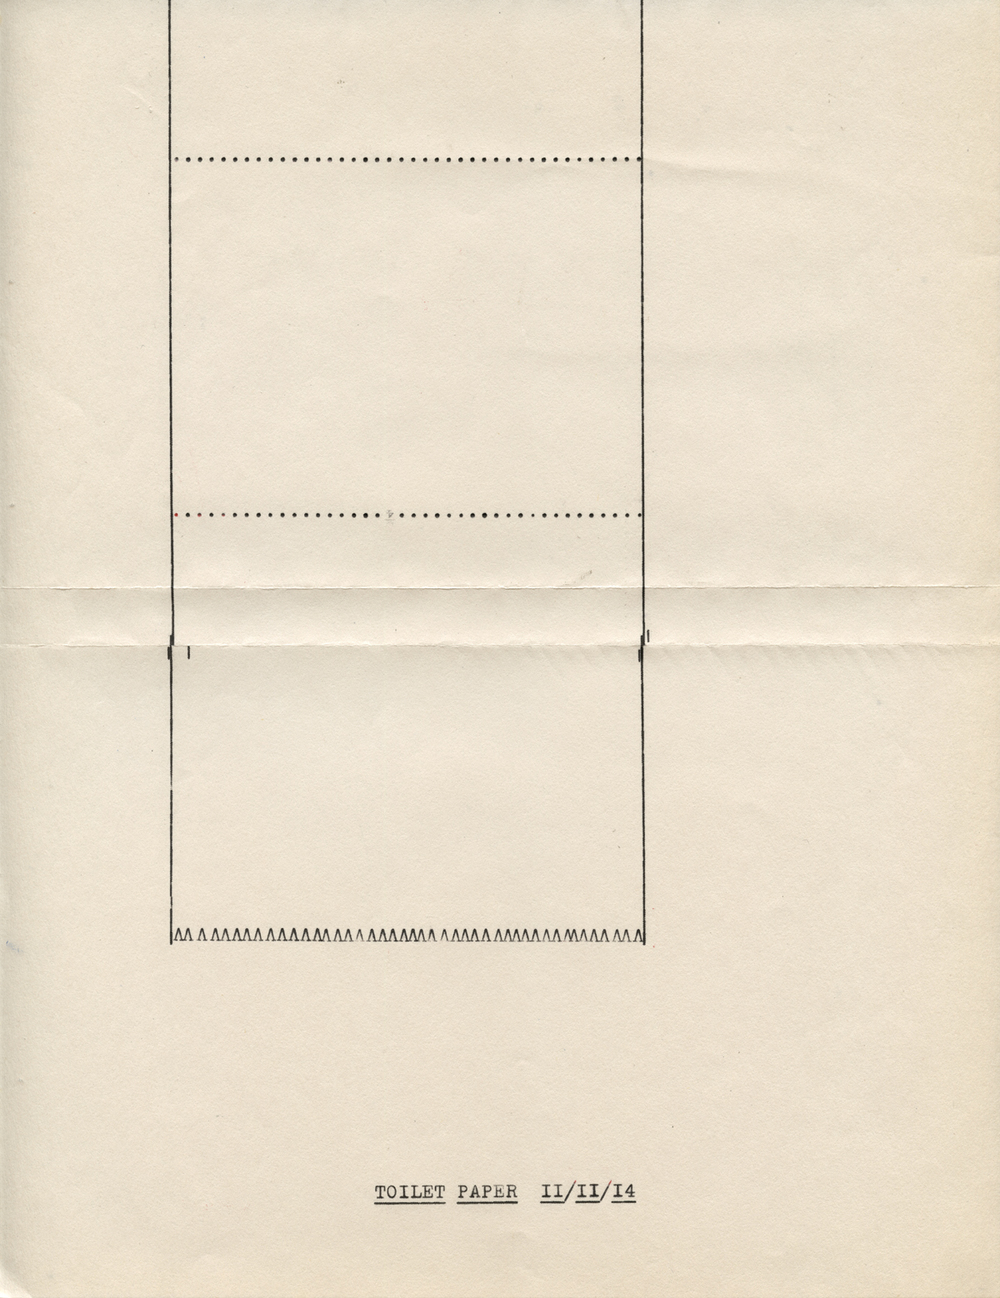 2014_11_typewriter_drawing.jpg